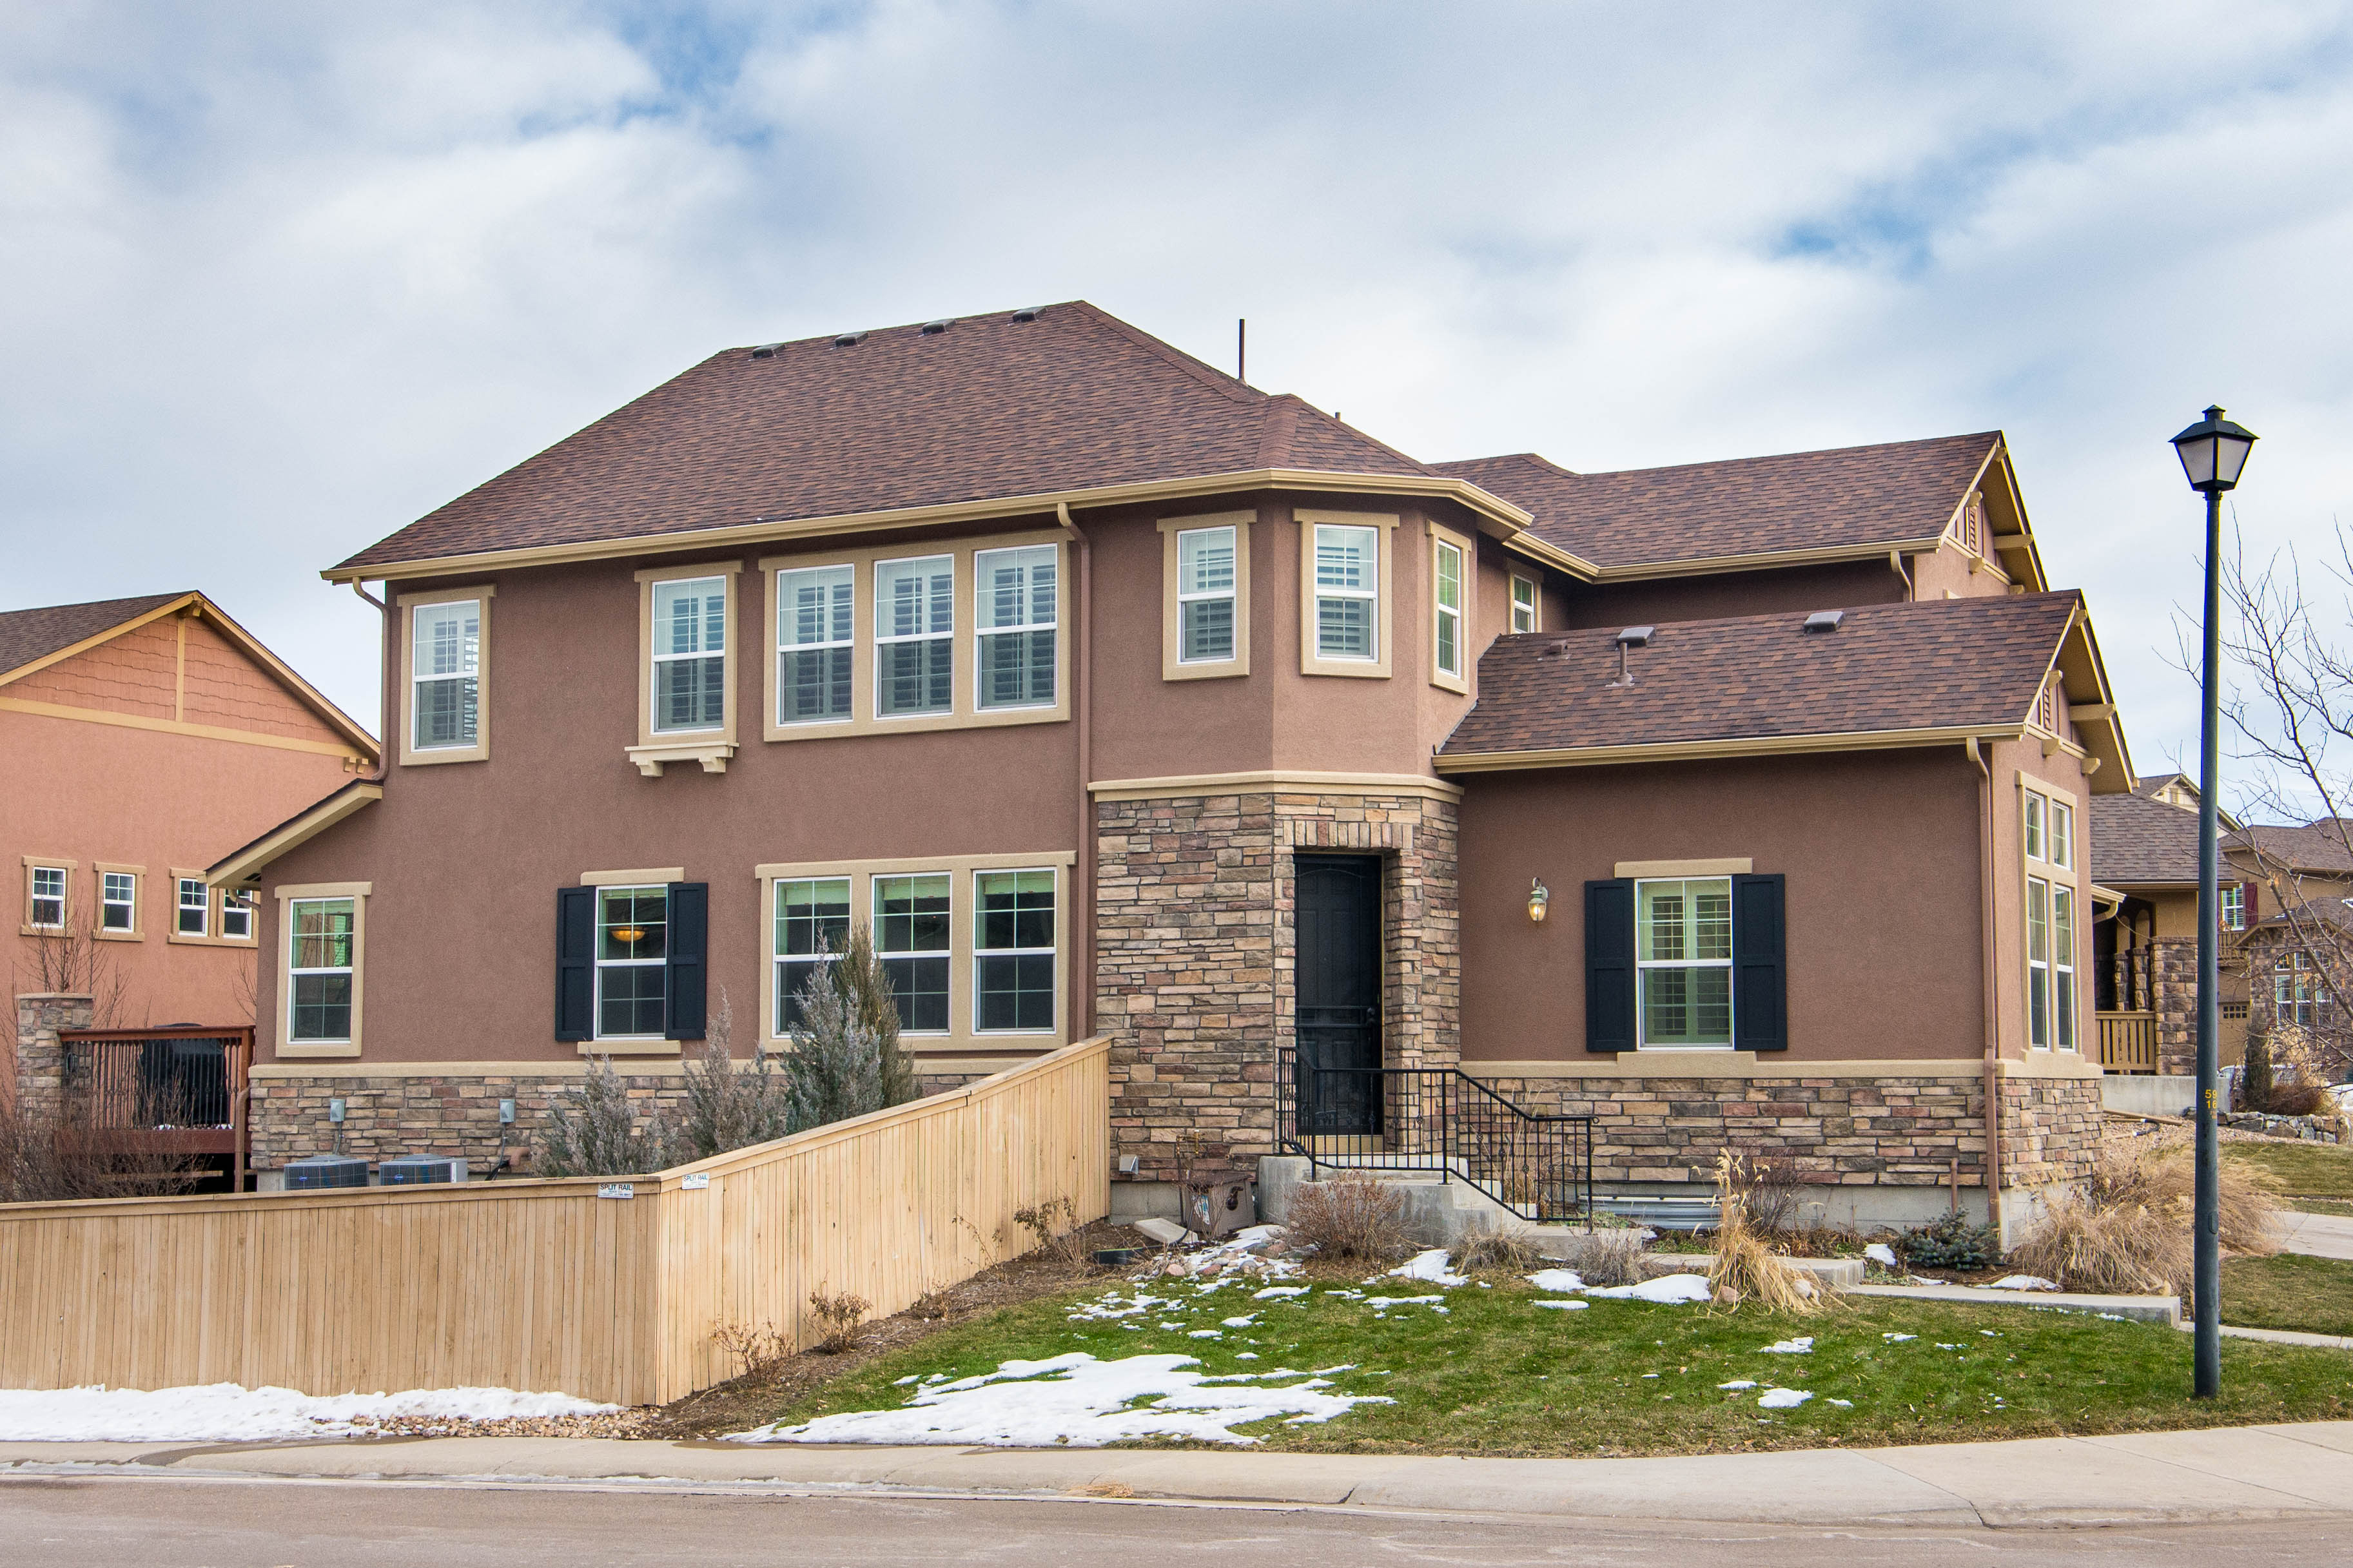 sales property at Immaculate Bayberry model, built by Shea Homes